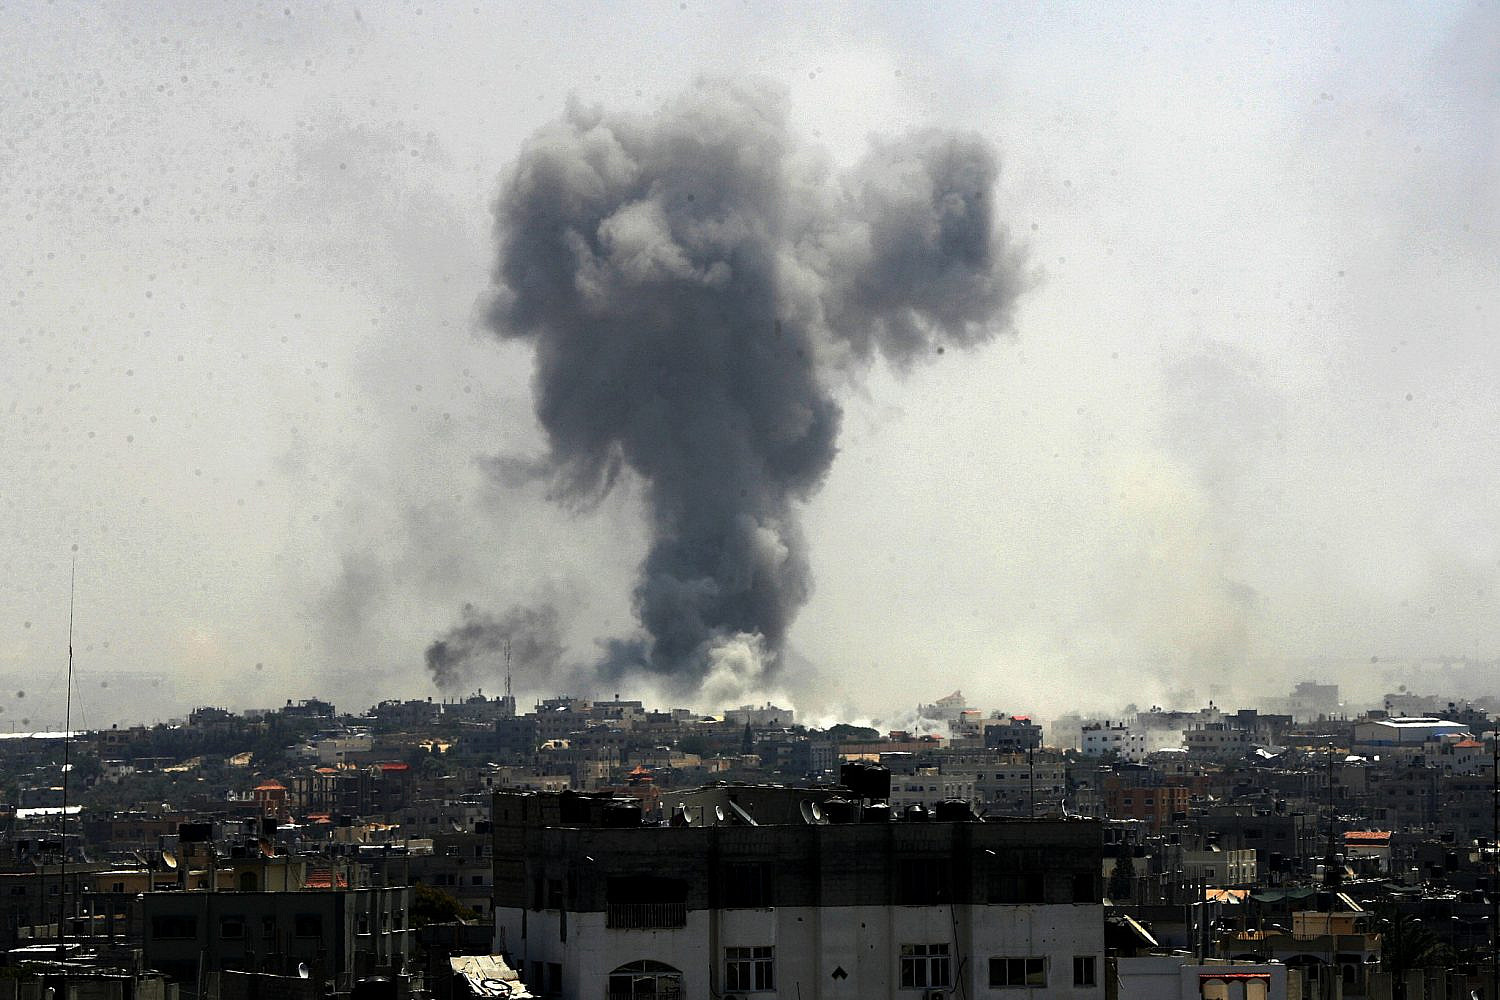 Smoke rises following Israeli air strikes in Rafah in the southern Gaza Strip, Aug. 1, 2014. (Abed Rahim Khatib/Flash90)